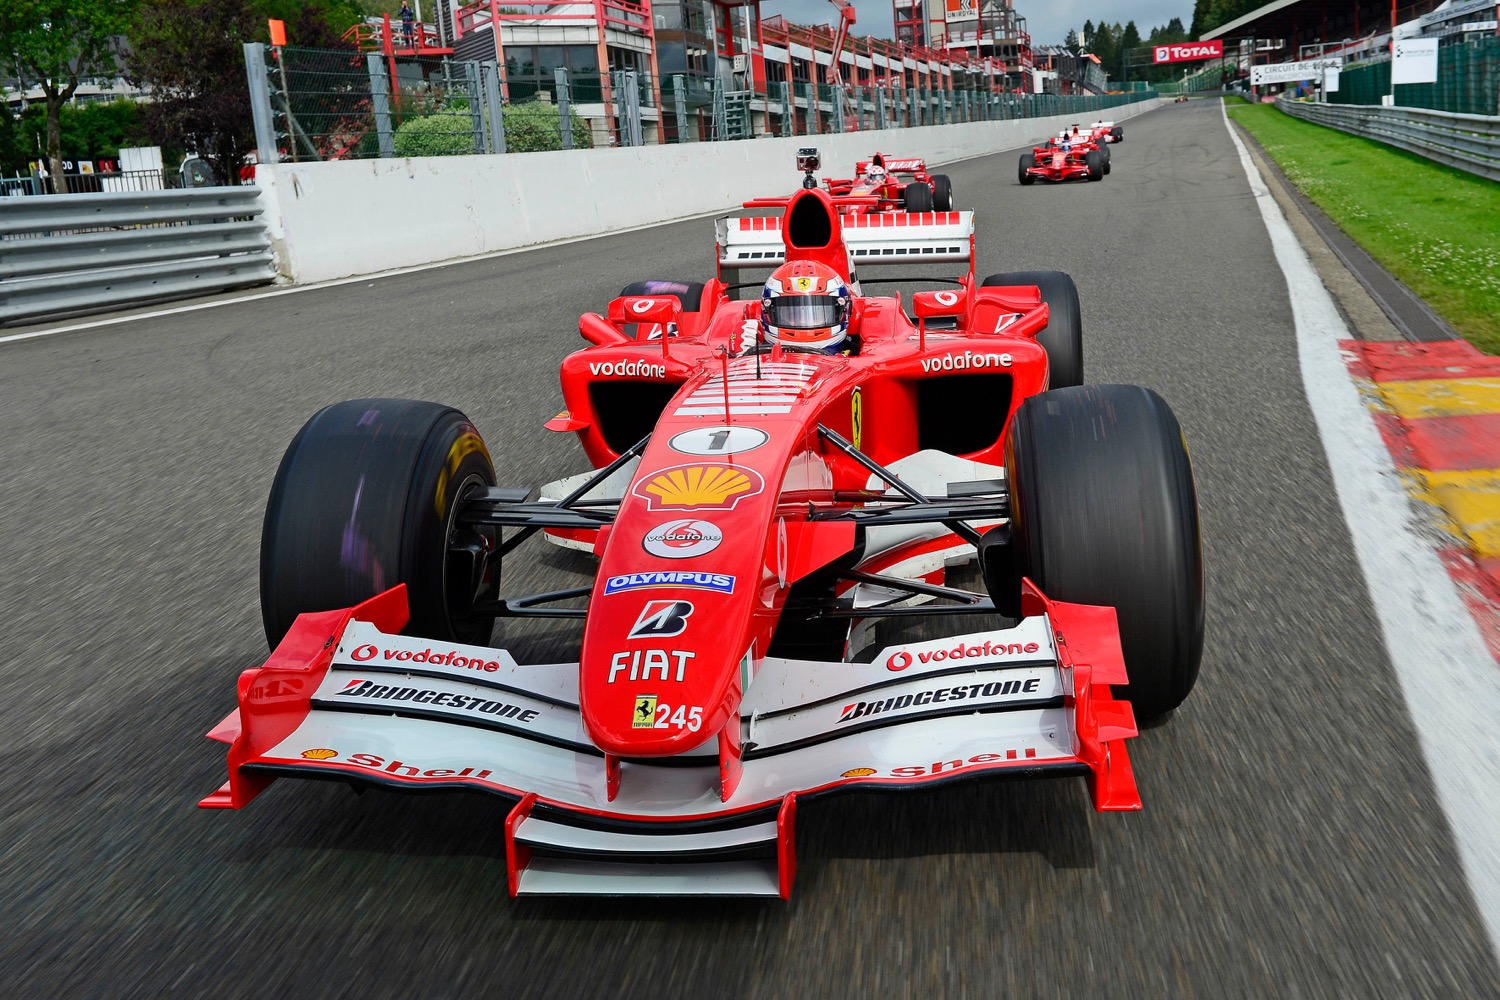 Formula 1 photography for sale 8